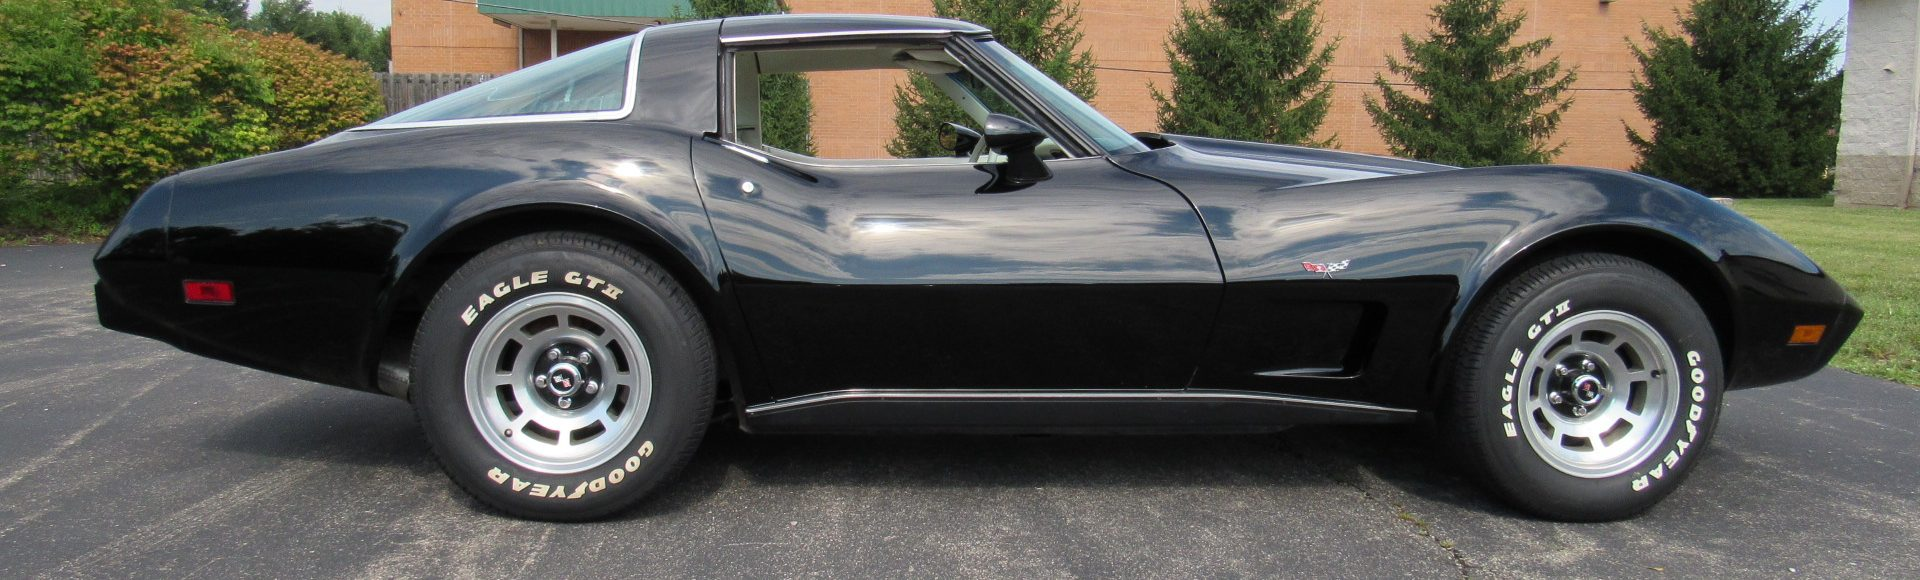 1978 Corvette, Black/Oyster, Auto, 2 Owners, SOLD!